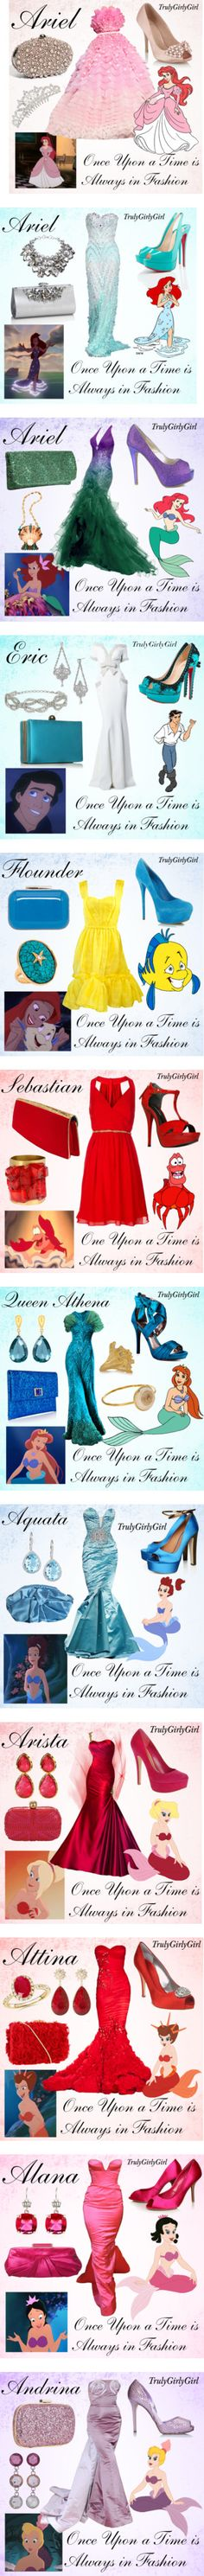 """Disney Style: The Little Mermaid"" by trulygirlygirl. My favorite is the Queen Athena outfit. Disney Outfits, Disney Inspired Outfits, Themed Outfits, Disney Dresses, Disney Style, Disney Love, Disney Clothes, Fashion Fantasy, K Fashion"